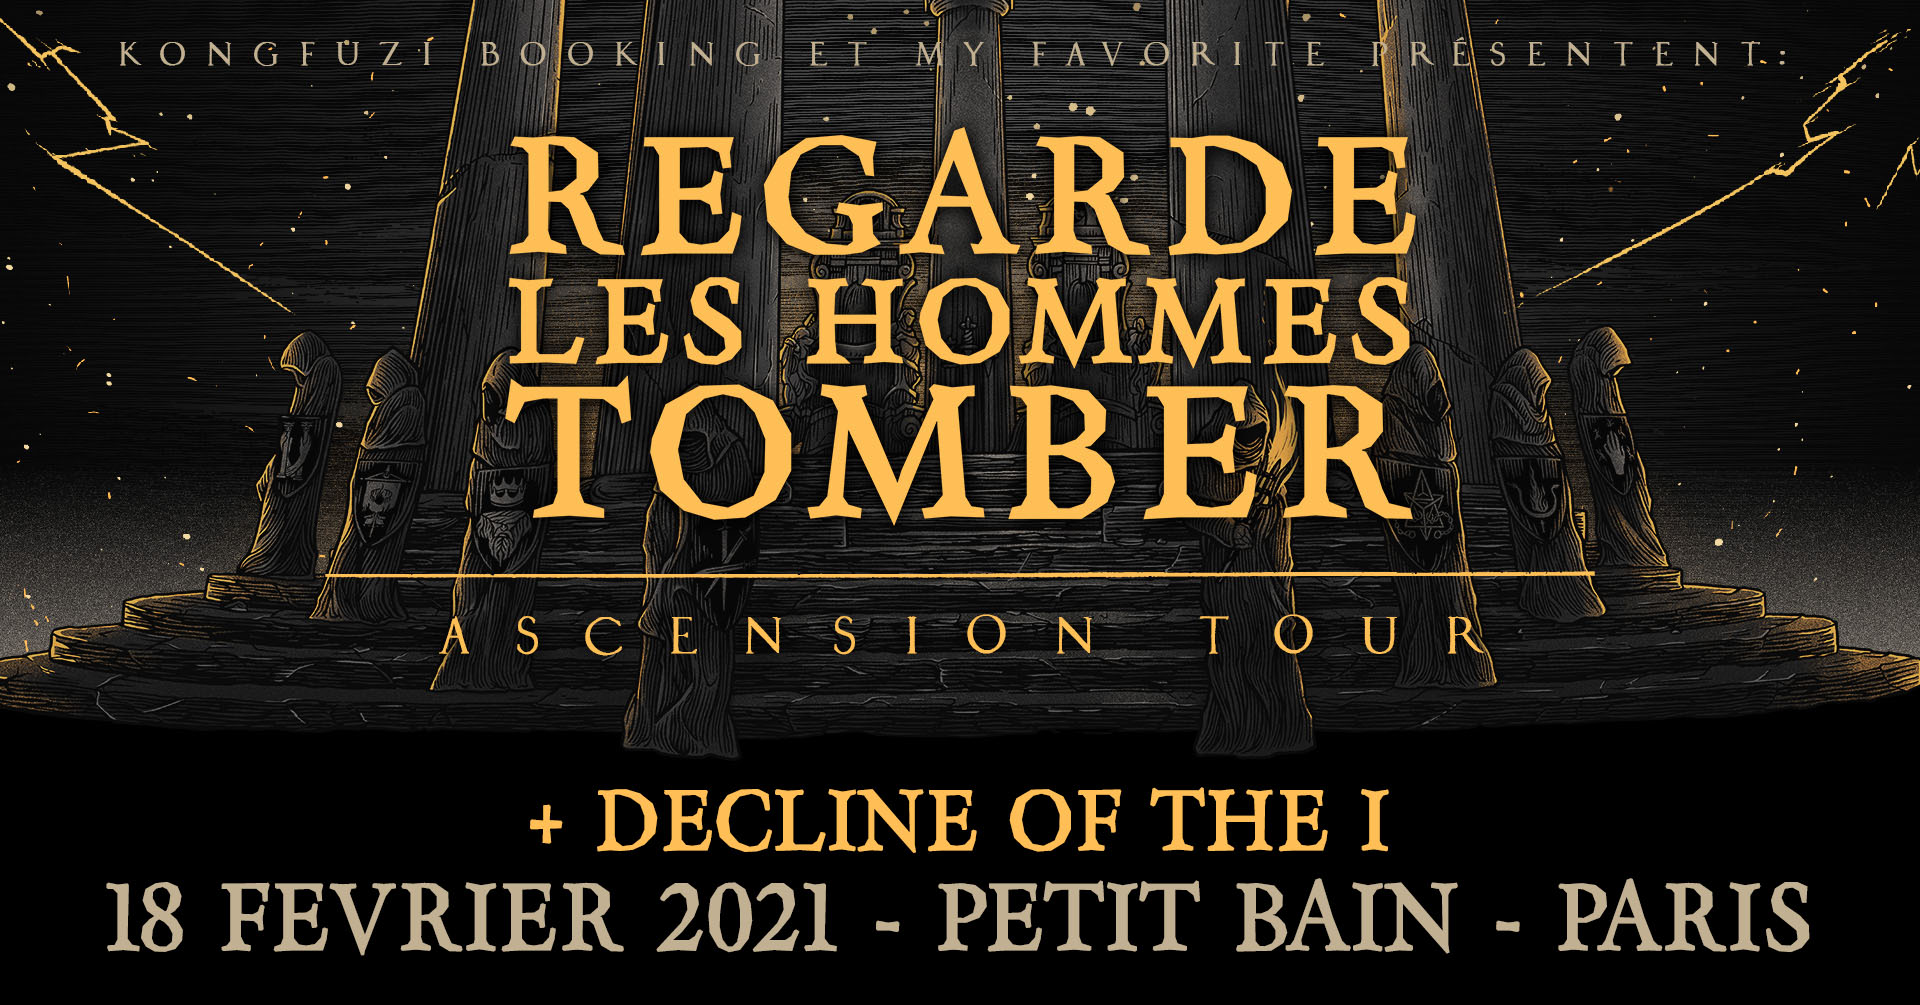 REGARDE LES HOMMES TOMBER + DECLINE OF THE I